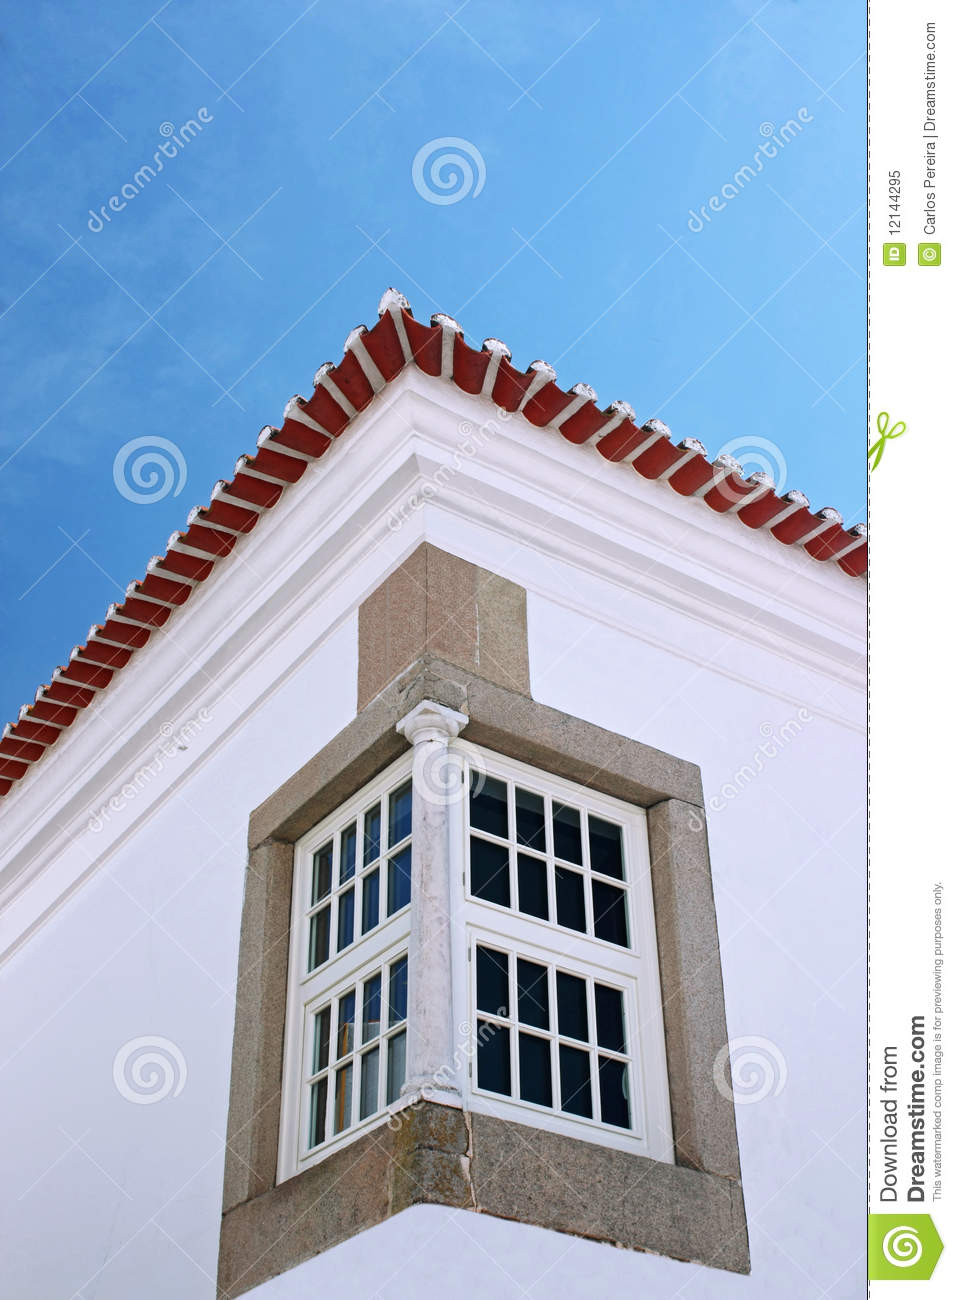 Typical Corner Window In A Old Building Stock Image